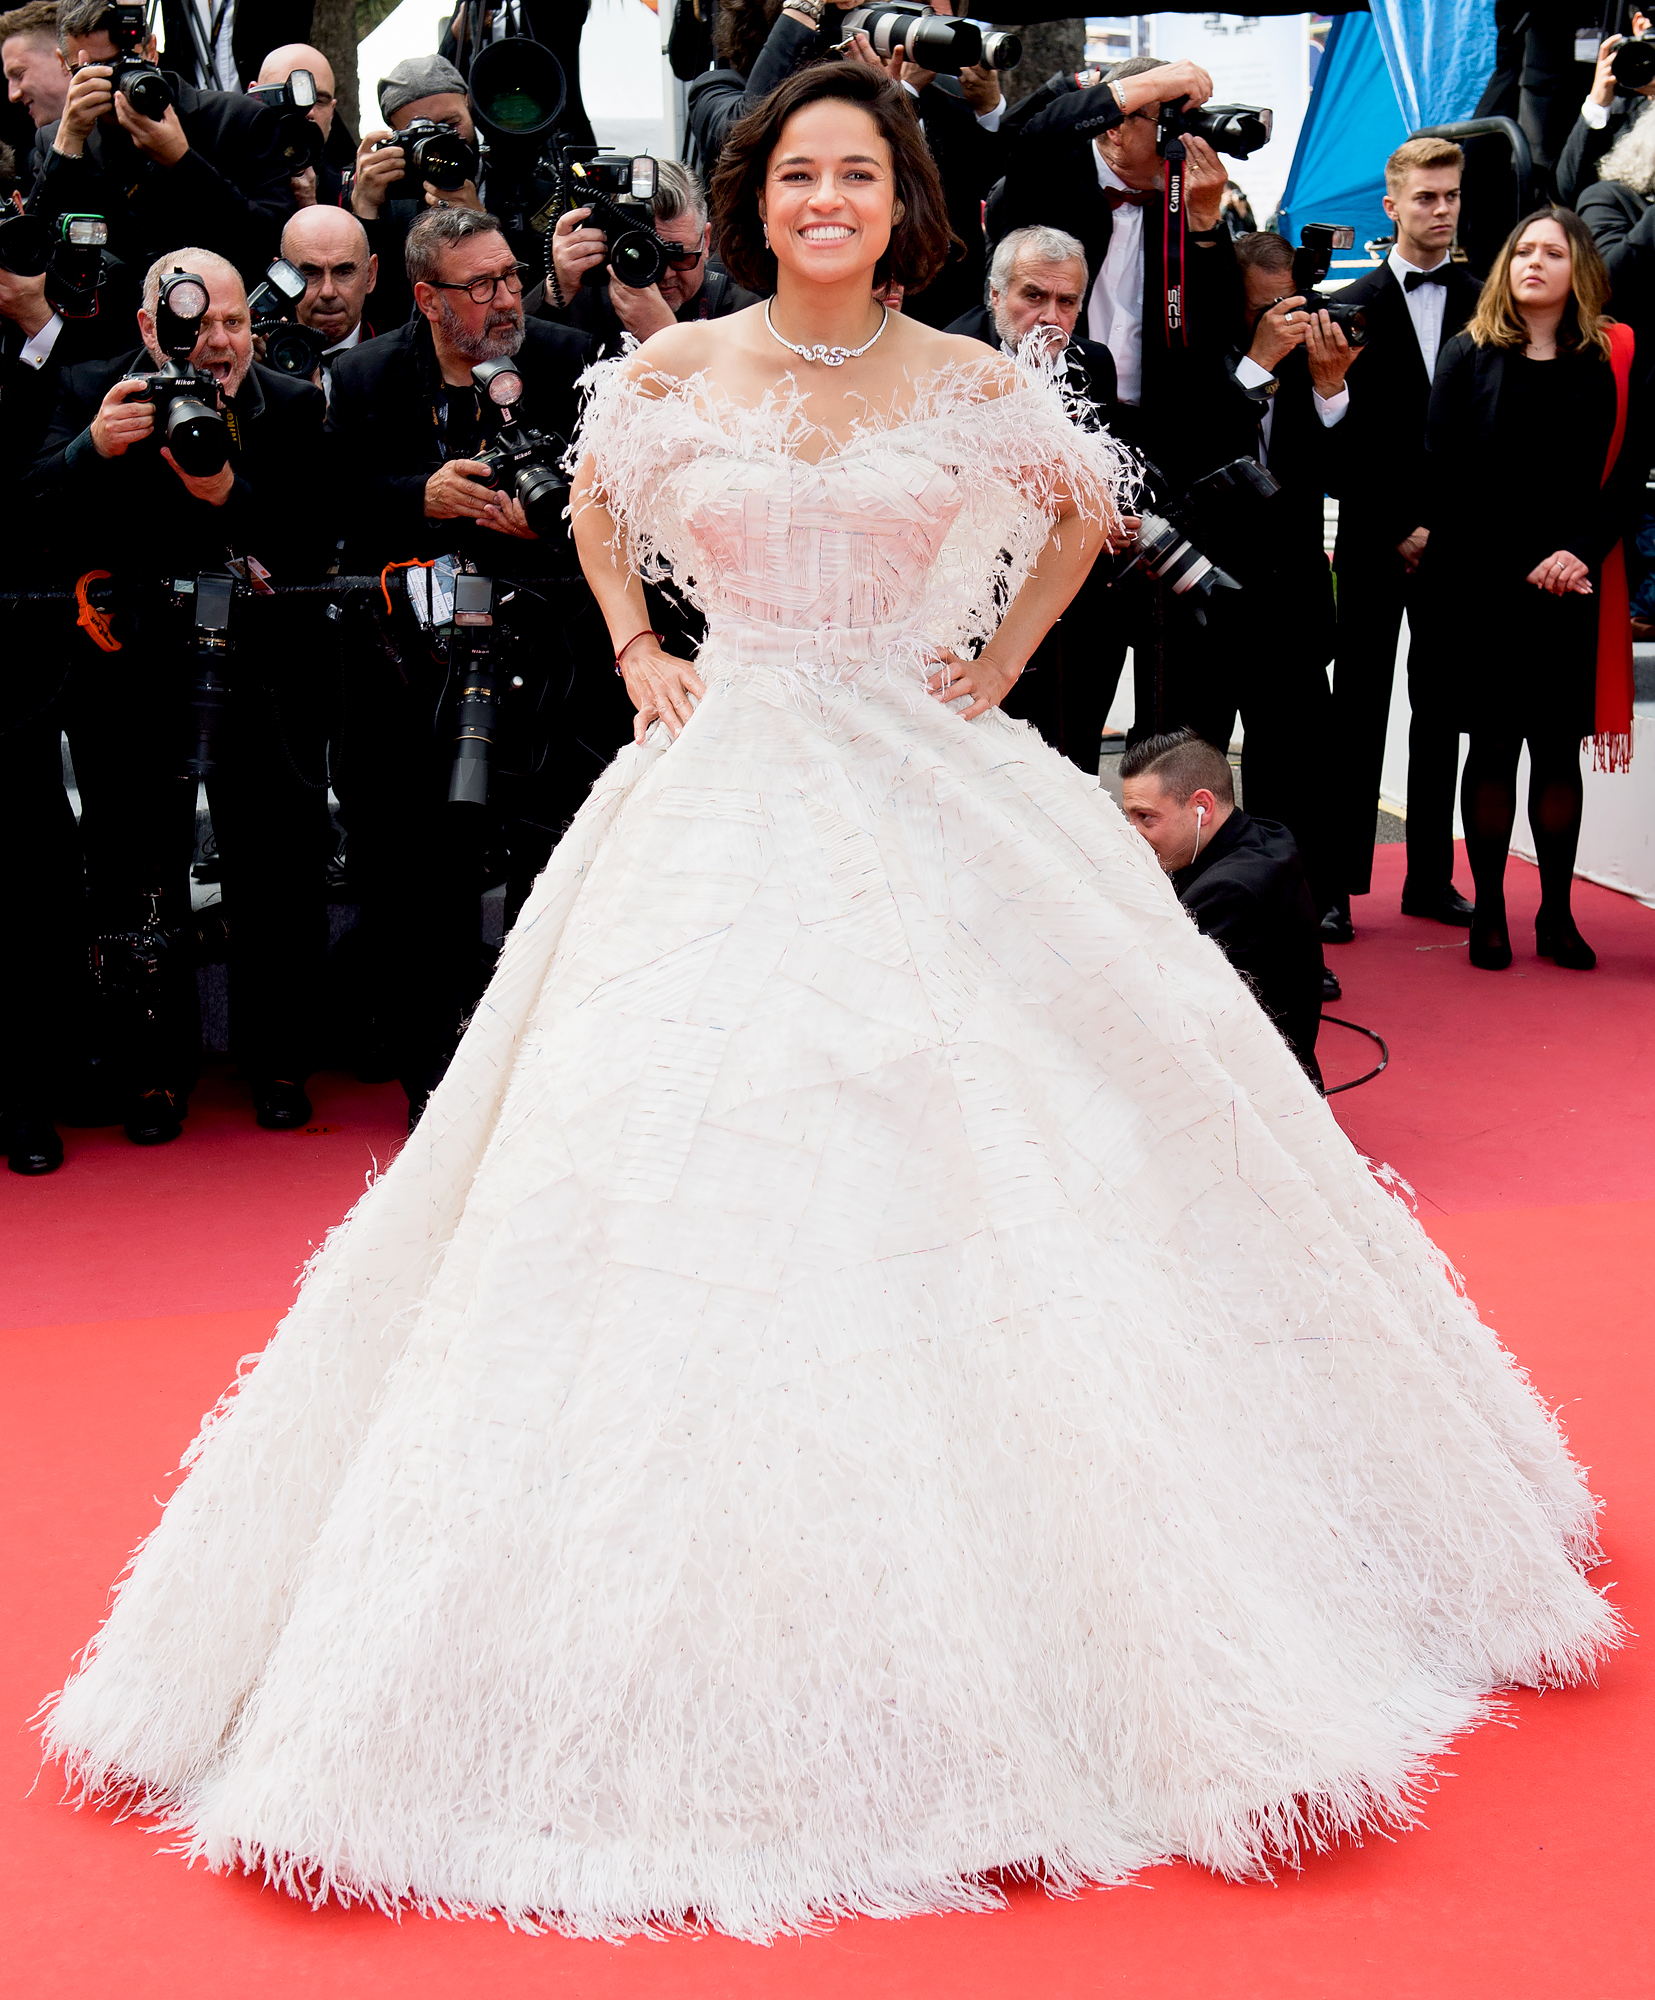 Michelle-Rodriguez - The actress was the belle of the ball in her feathery Rami Kadi gown at the Once Upon a Time in Hollywood premiere on Tuesday, May 21.